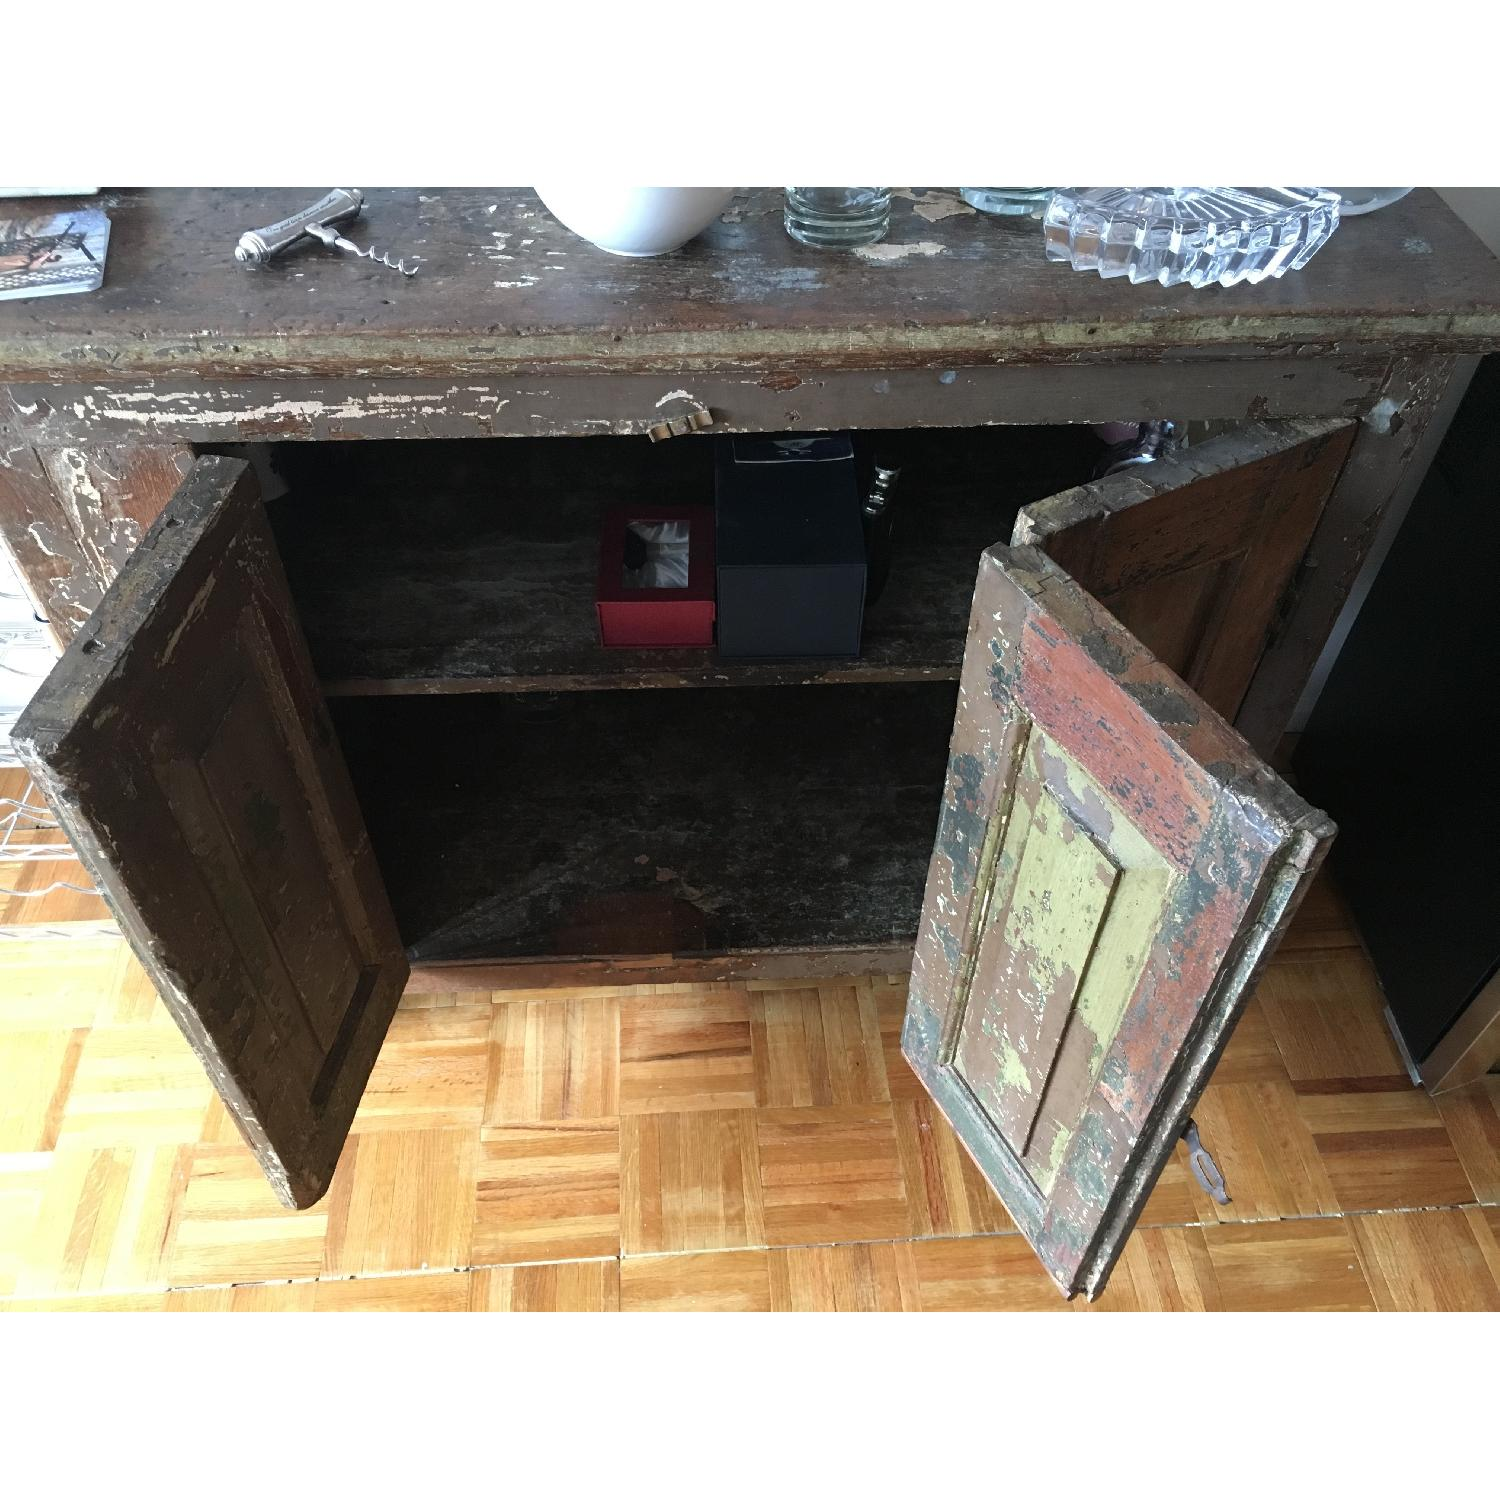 Antique 1920's Wooden Bar/Credenza from India - image-5